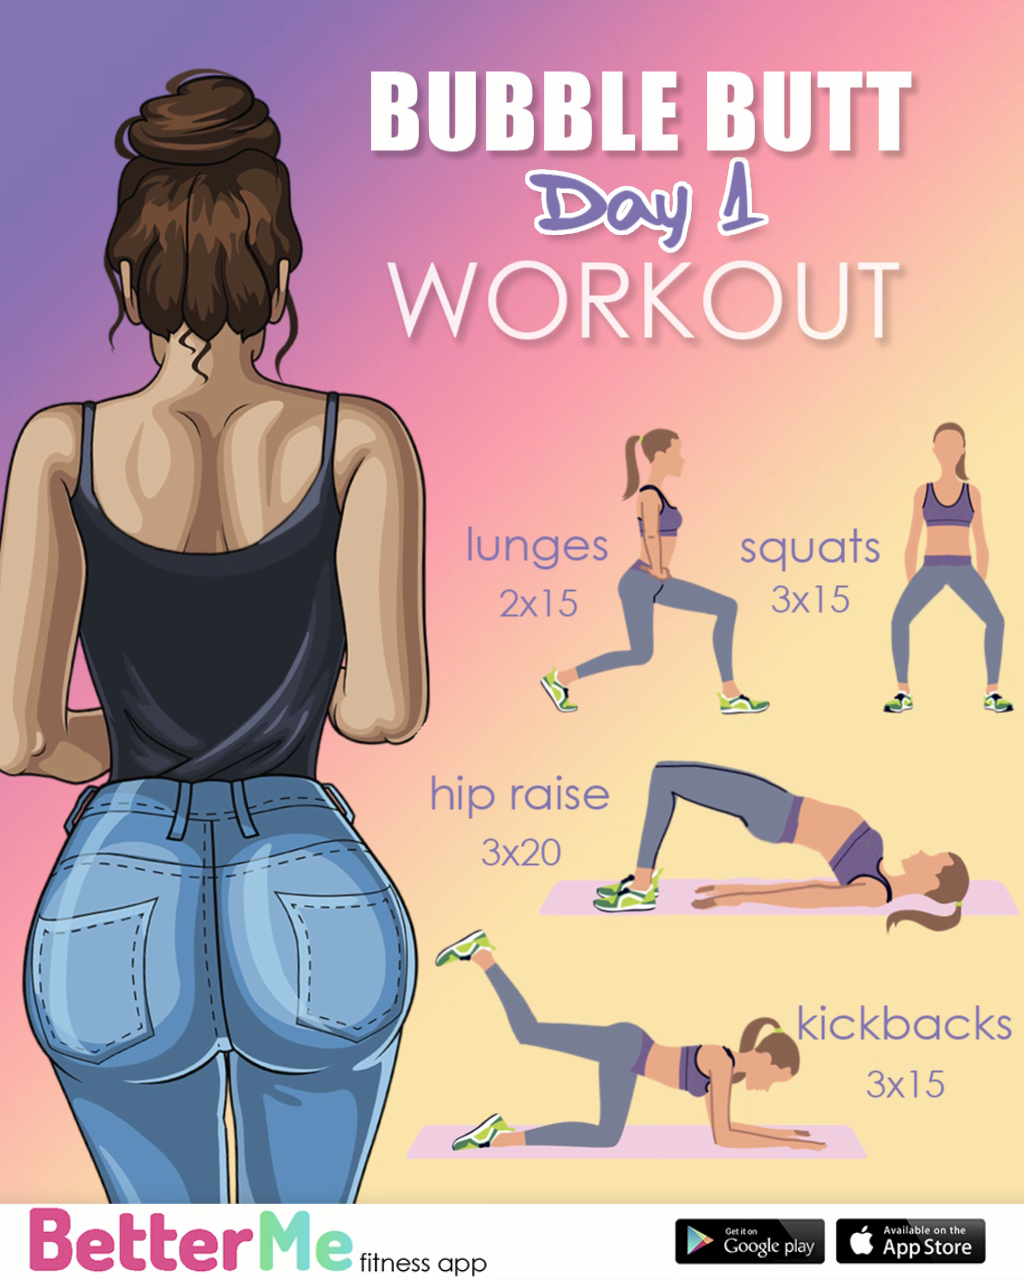 Meal & Exercise Plan for Weight Loss. Toned legs, Perkier Butt, Flatter Belly. #workathome